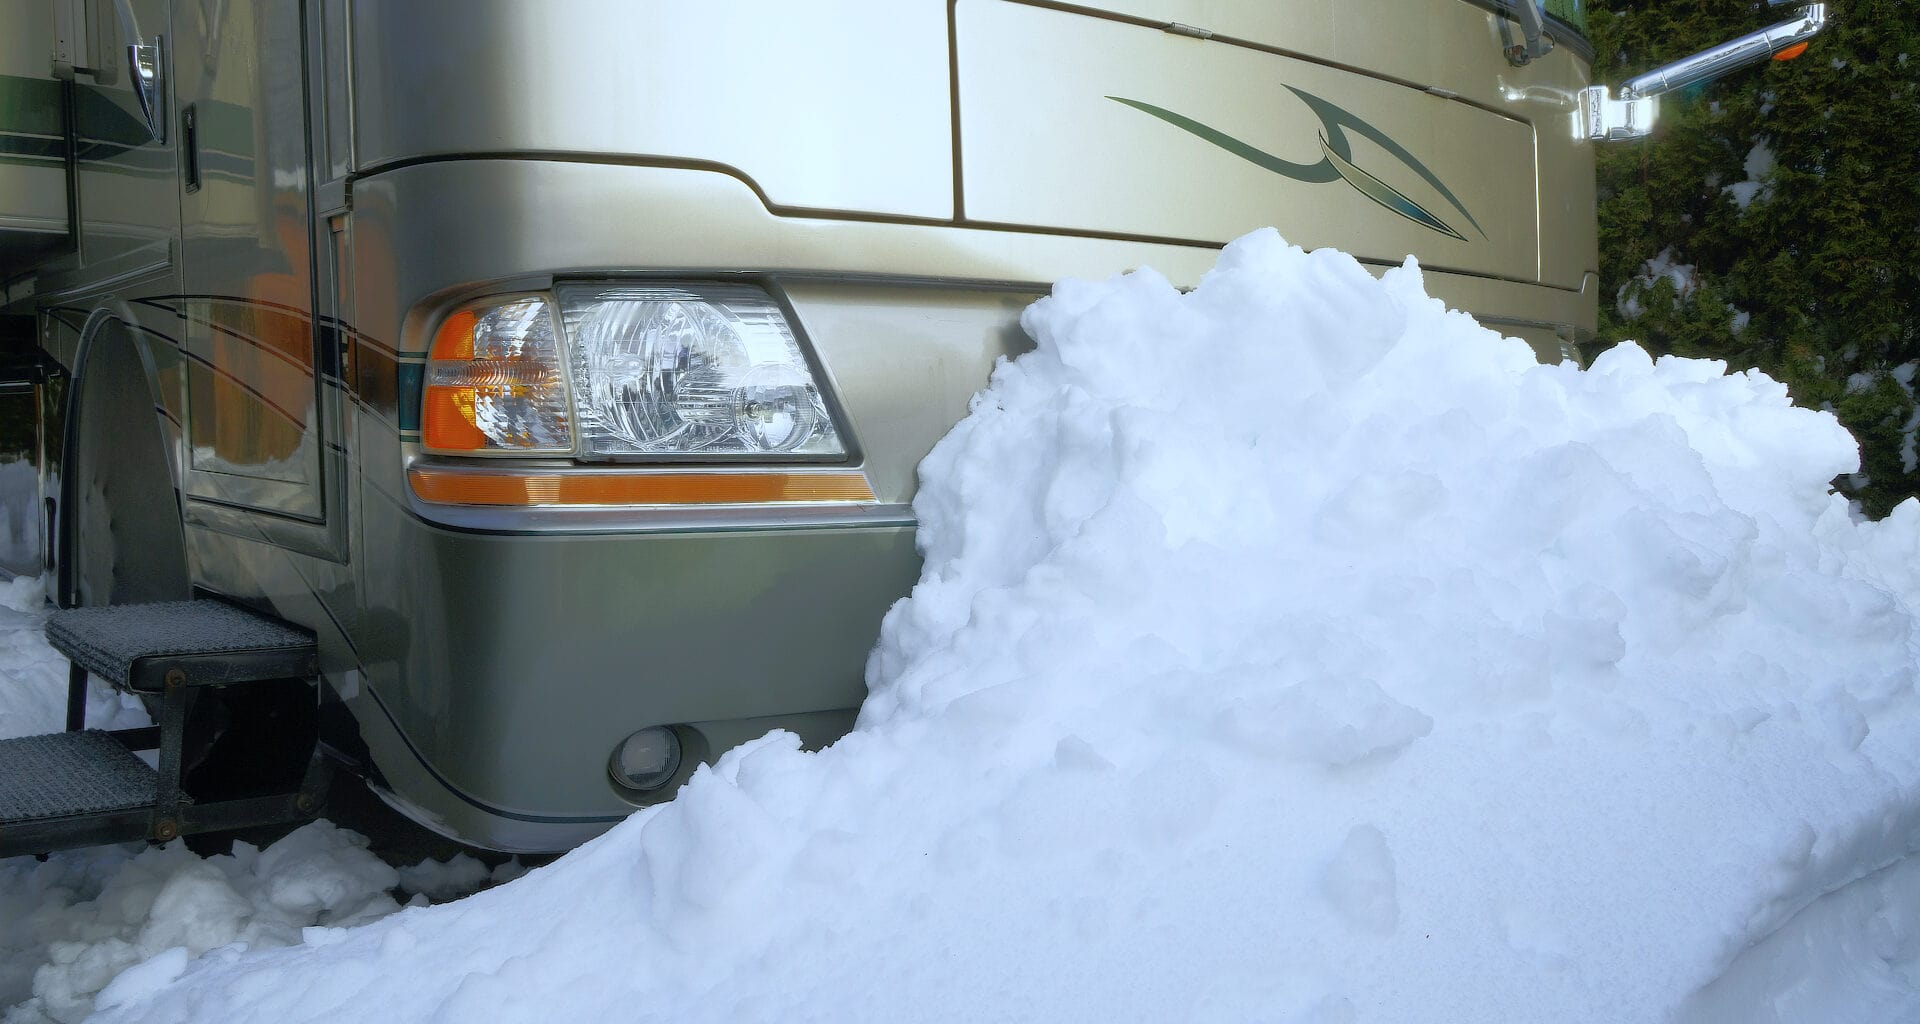 Use these tips for your next winter RV camping trip... and stay warm and cozy